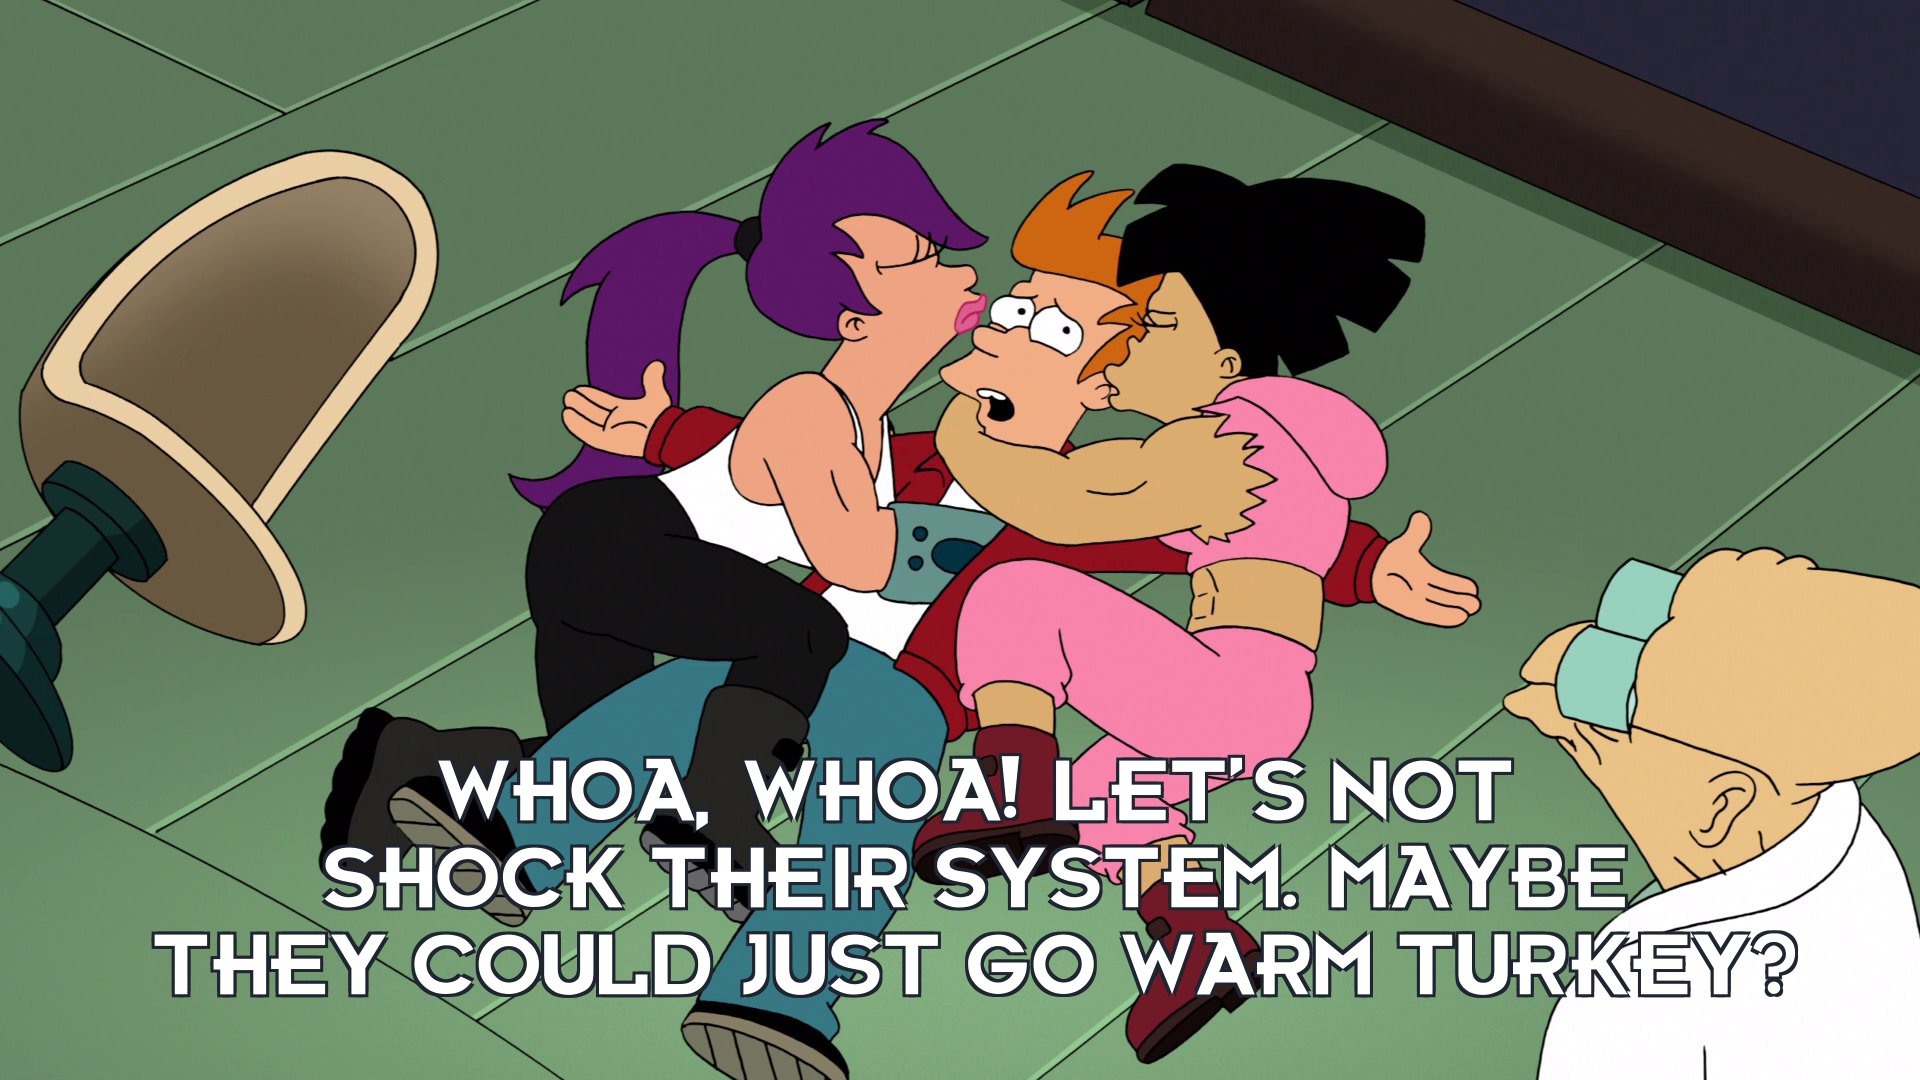 Philip J Fry: Whoa, whoa! Let's not shock their system. Maybe they could just go warm turkey?